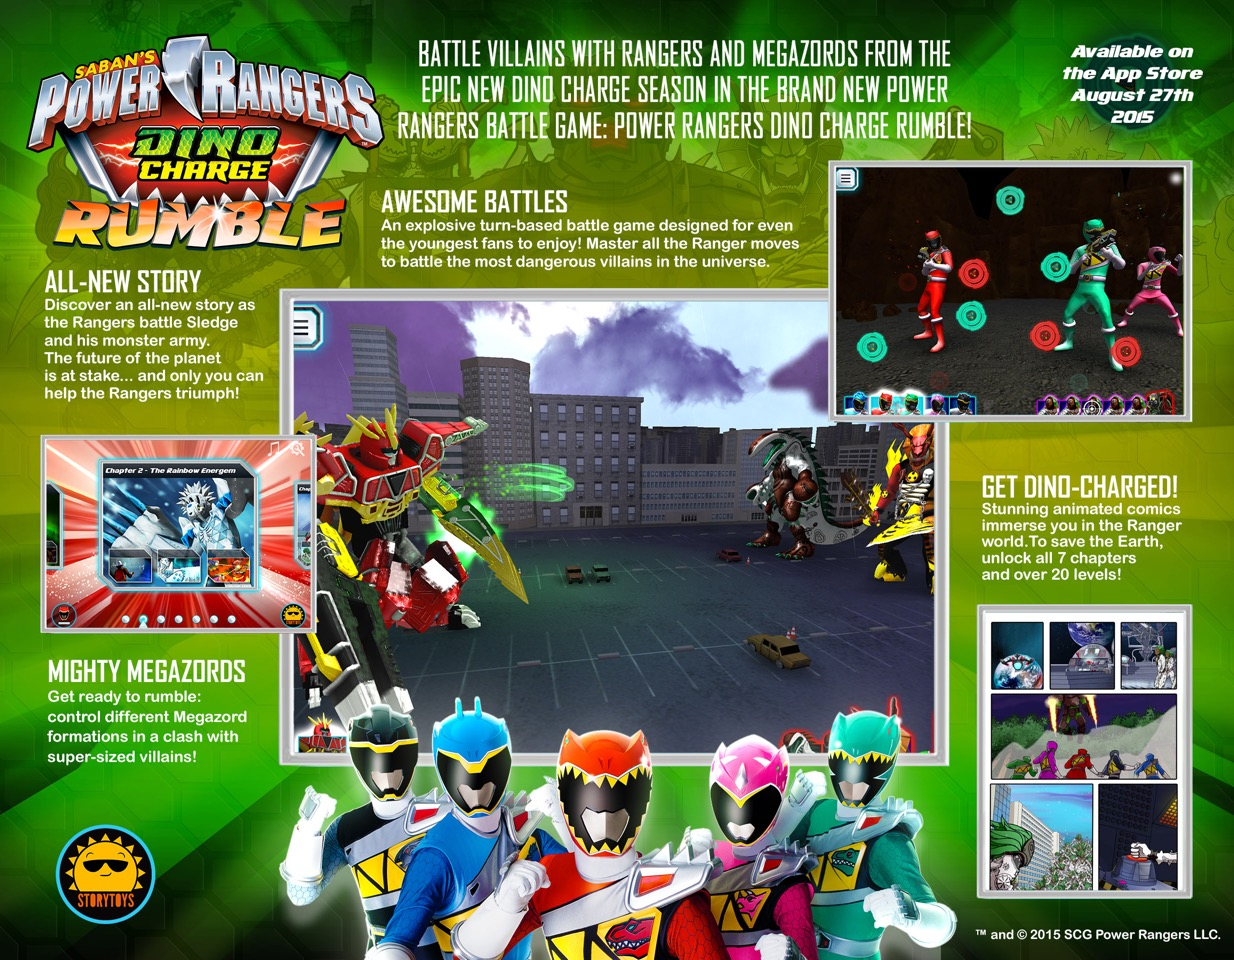 New Mobile Game Power Rangers Dino Charge Rumble